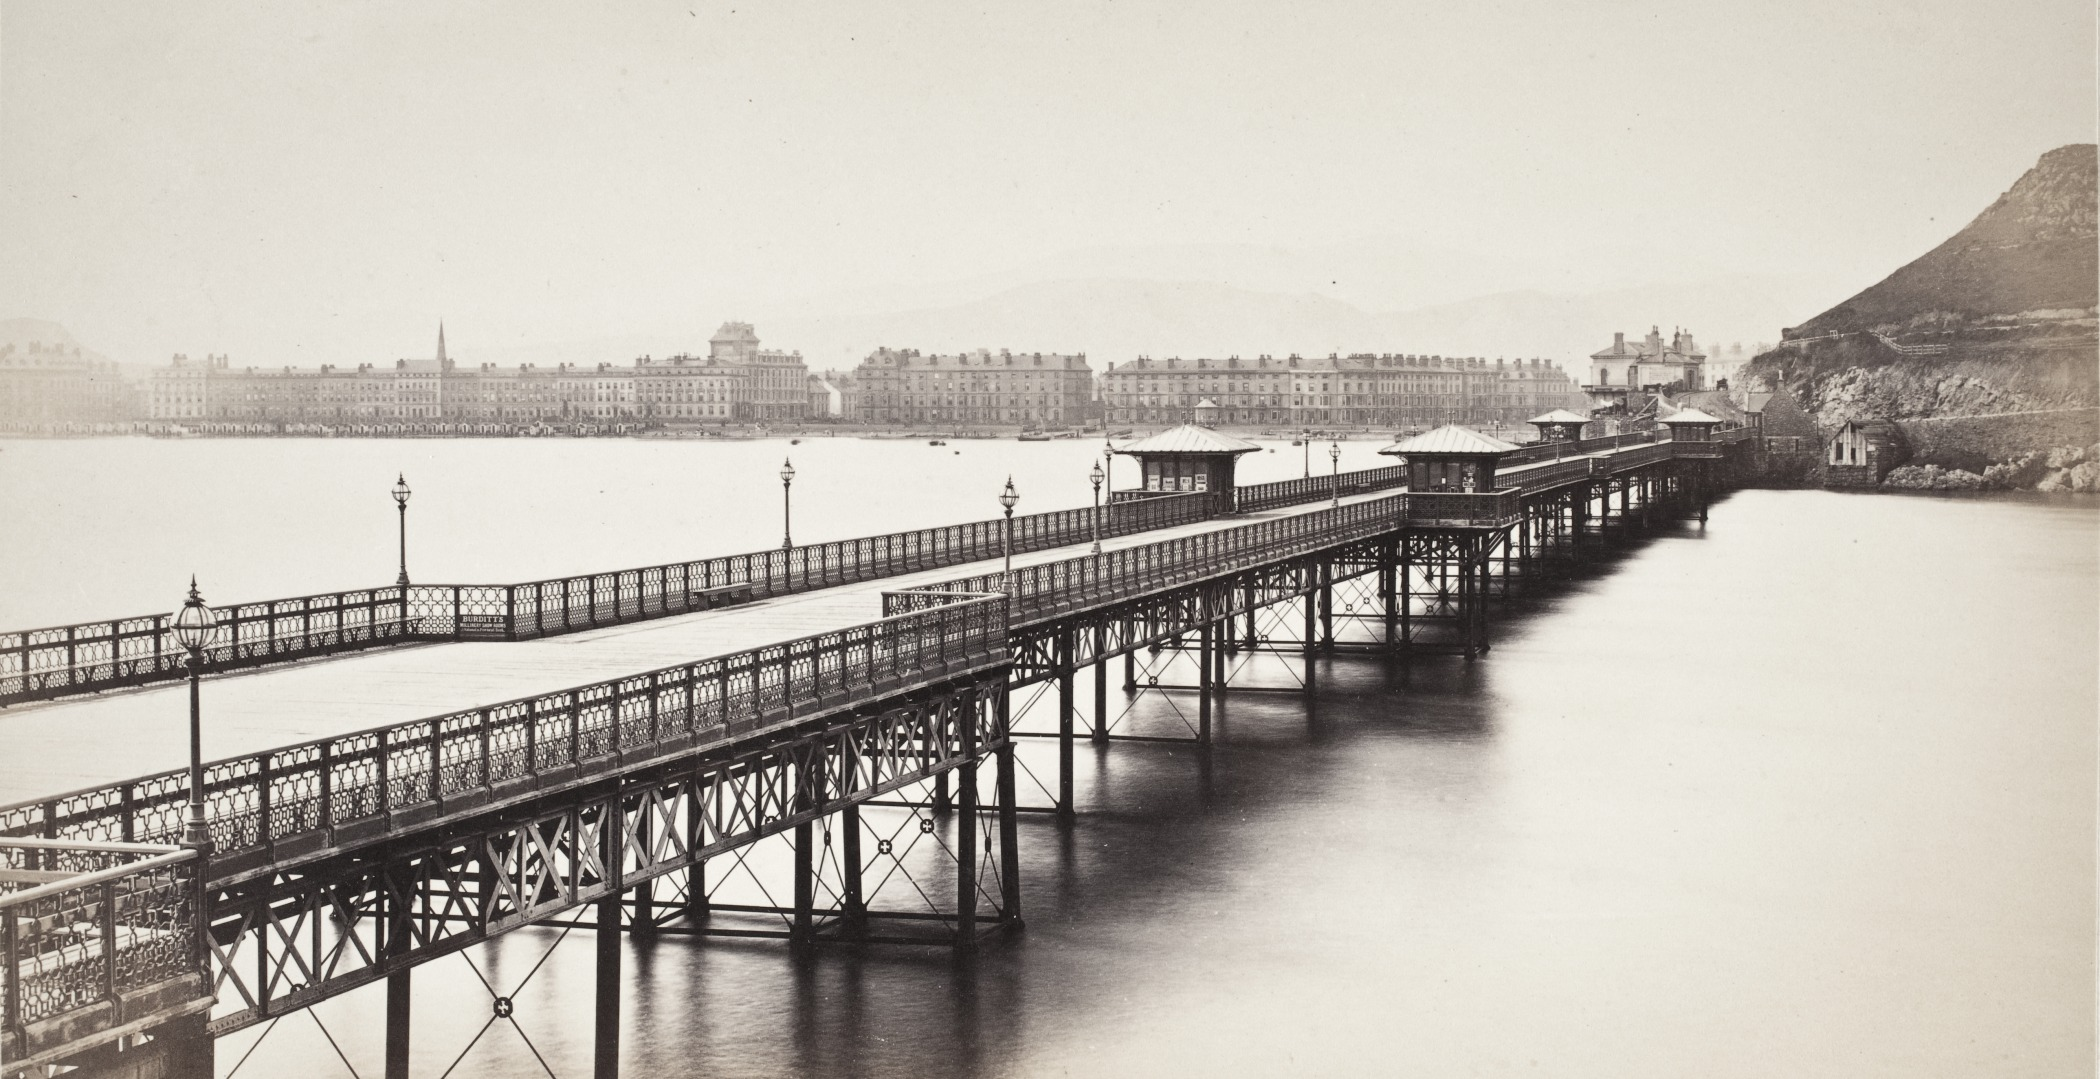 Llandudno_From_The_Pier-Head_(681)_LACMA_M.2008.40.202.1 (2)